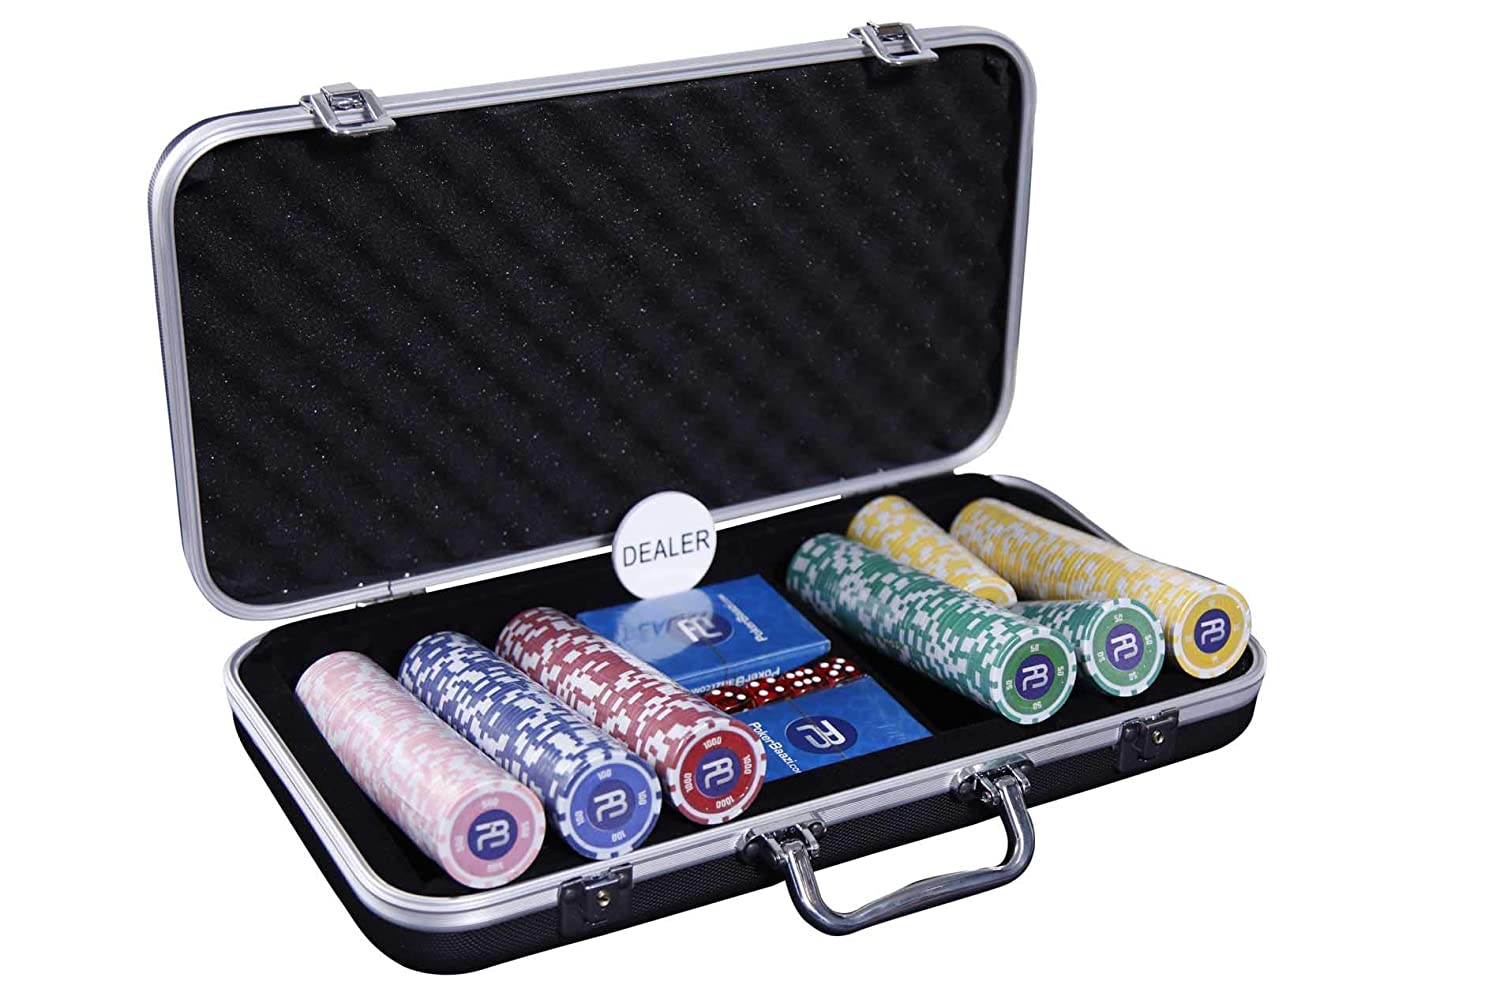 Buy Pokerbaazi Chip Set 300 Pc Set With Two Playing Cards And One Dealer Button Online At Low Prices In India Amazon In